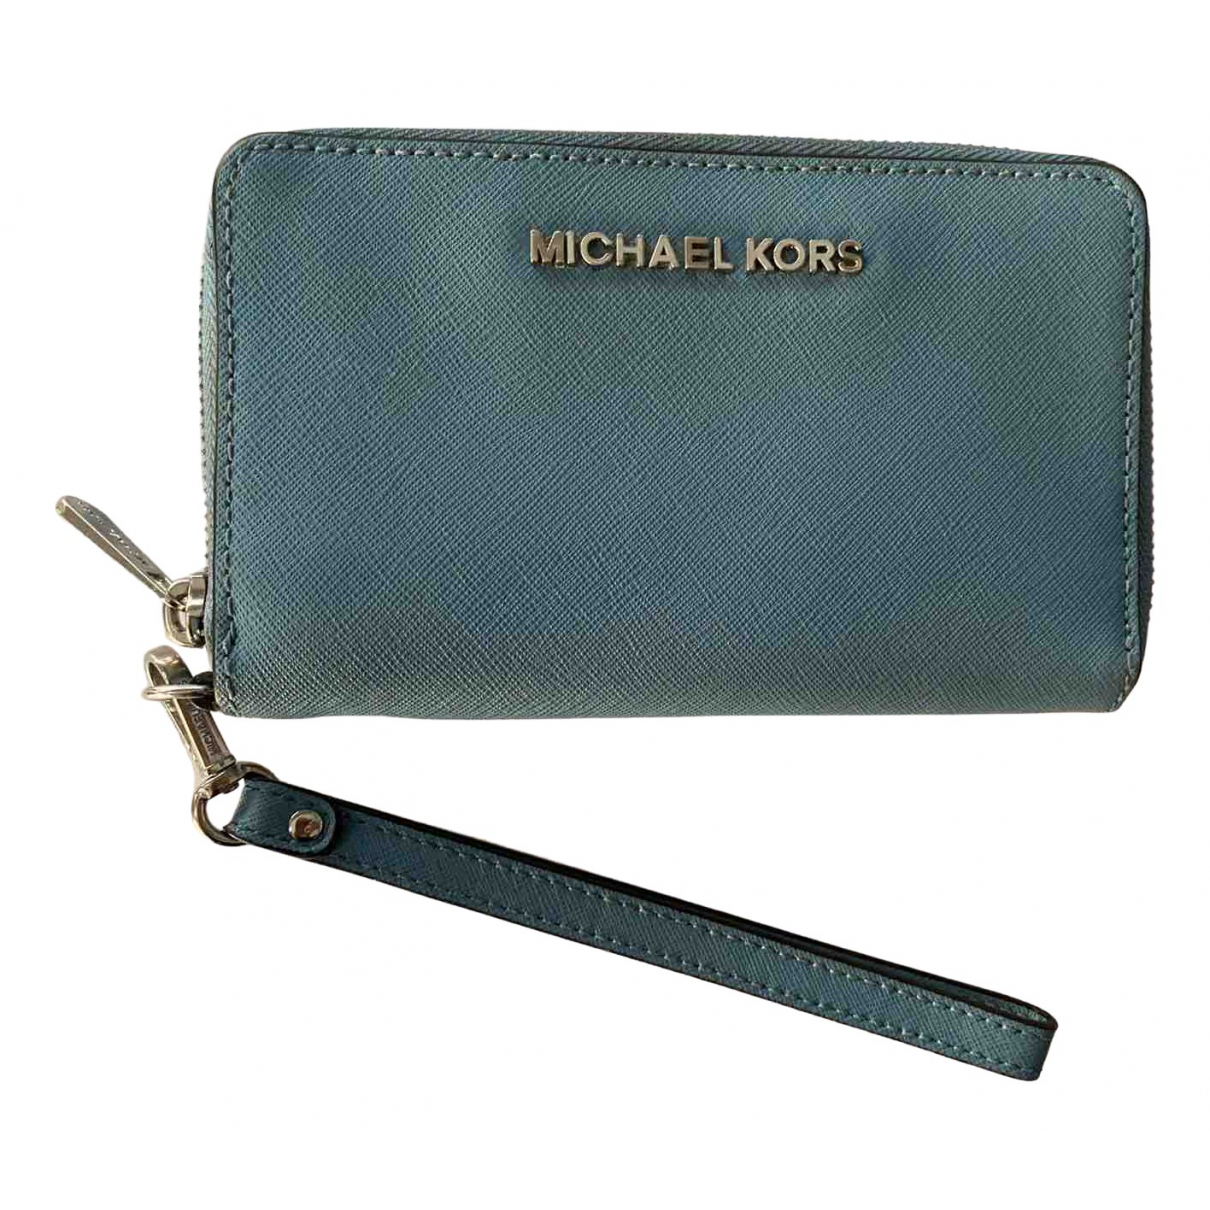 Michael Kors \N Turquoise Leather wallet for Women \N